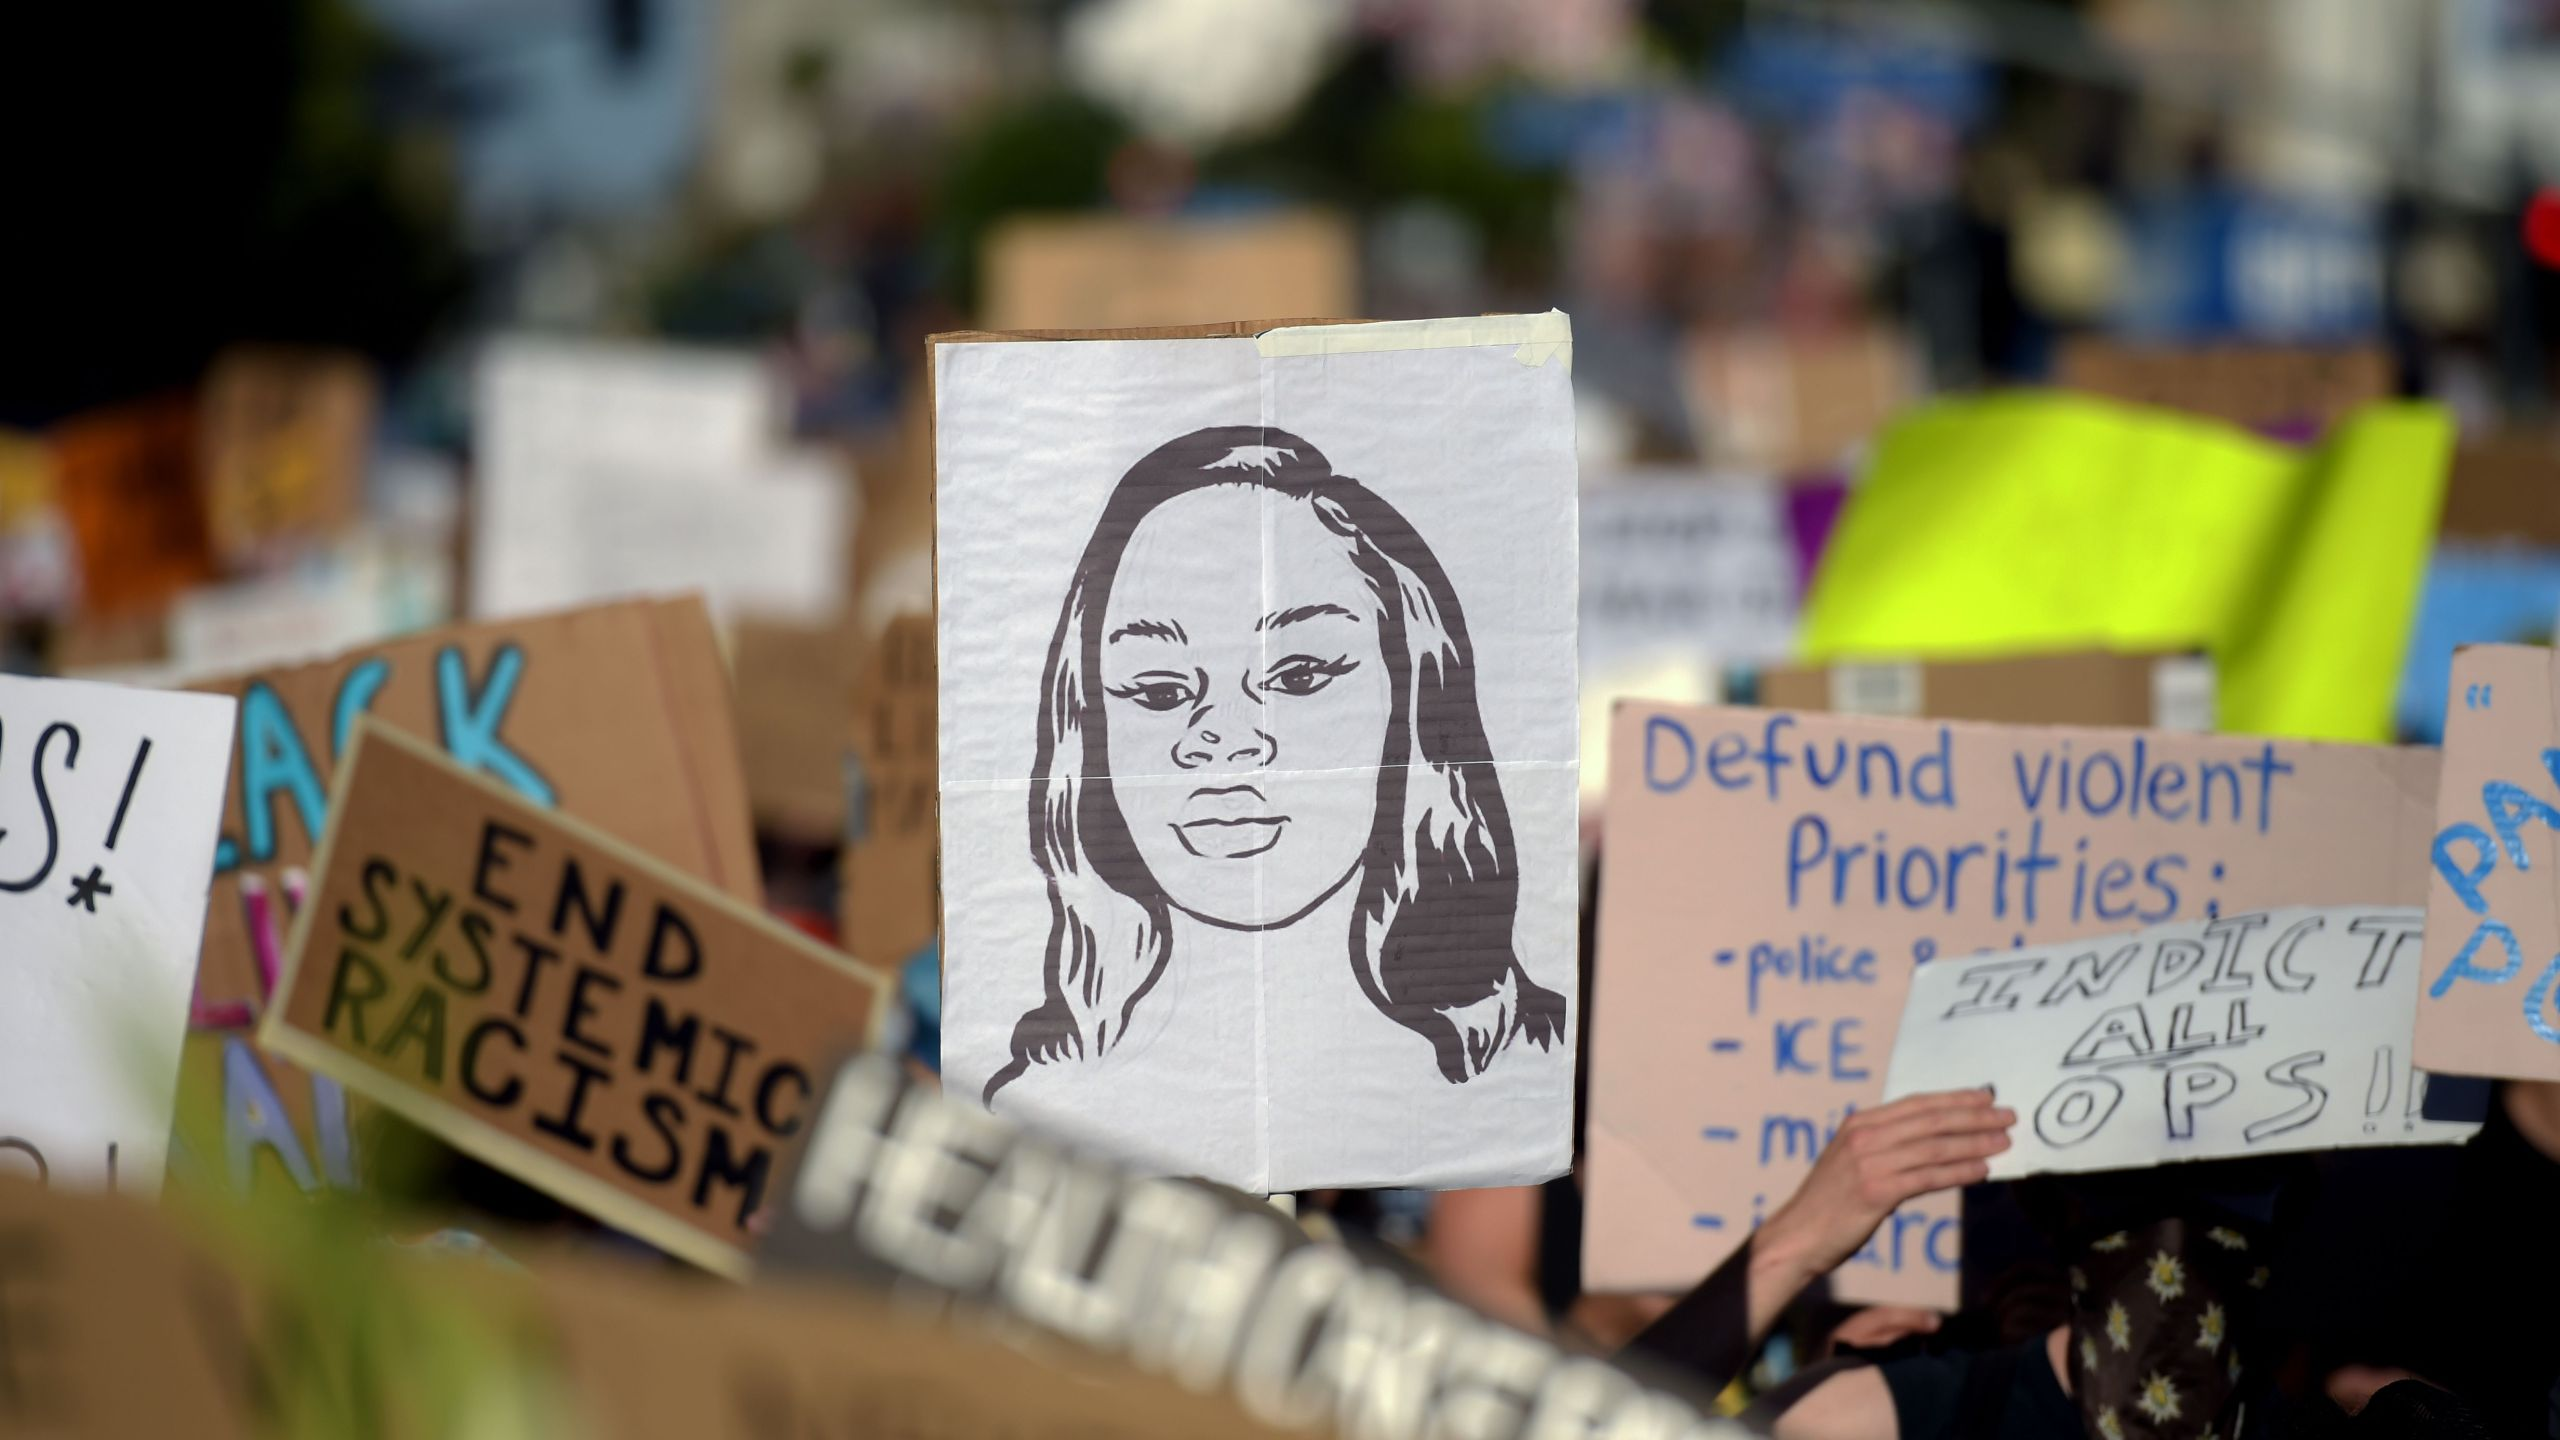 Protesters march holding placards and a portrait of Breonna Taylor during a demonstration against racism and police brutality, in Hollywood on June 7, 2020. (AGUSTIN PAULLIER/AFP via Getty Images)